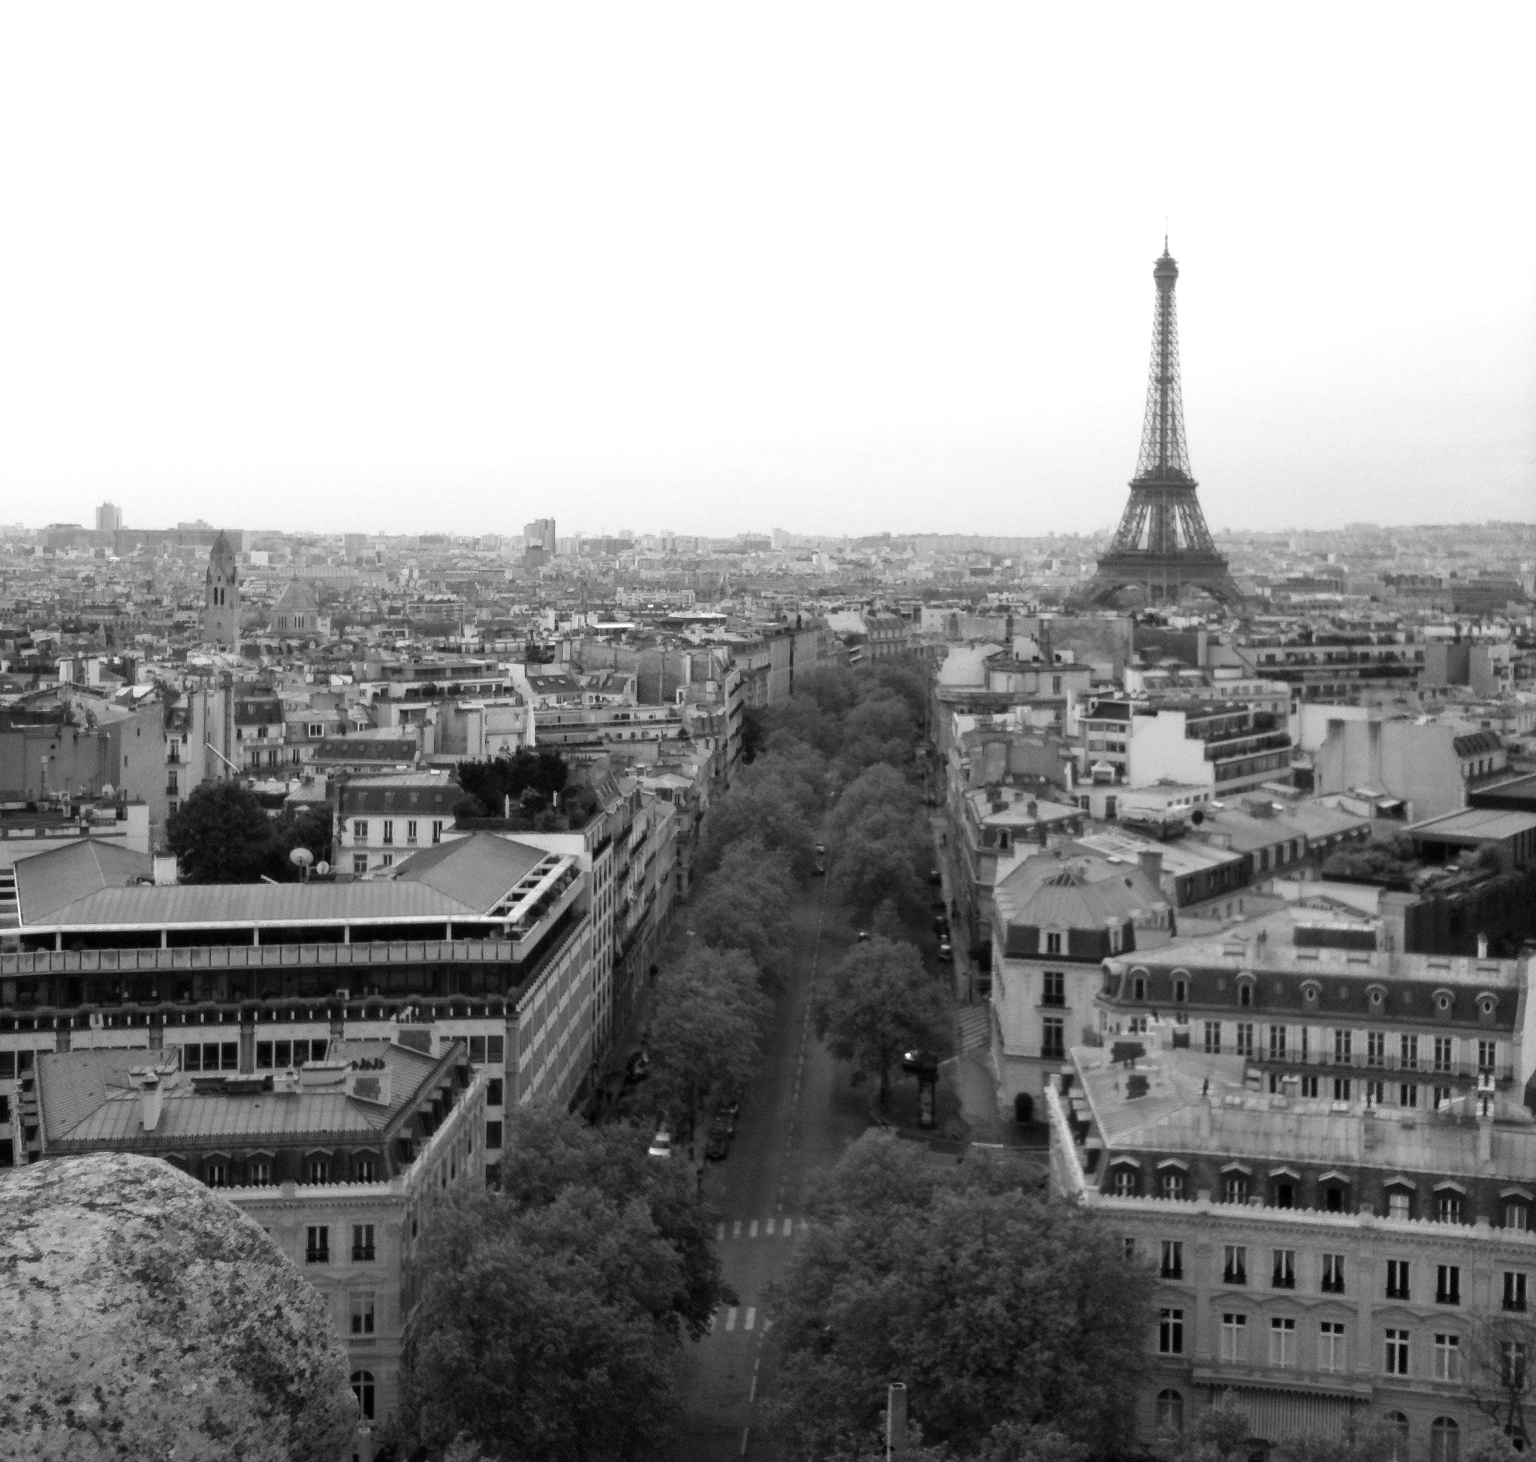 Paris as seen from the top of the Arc de Triomphe